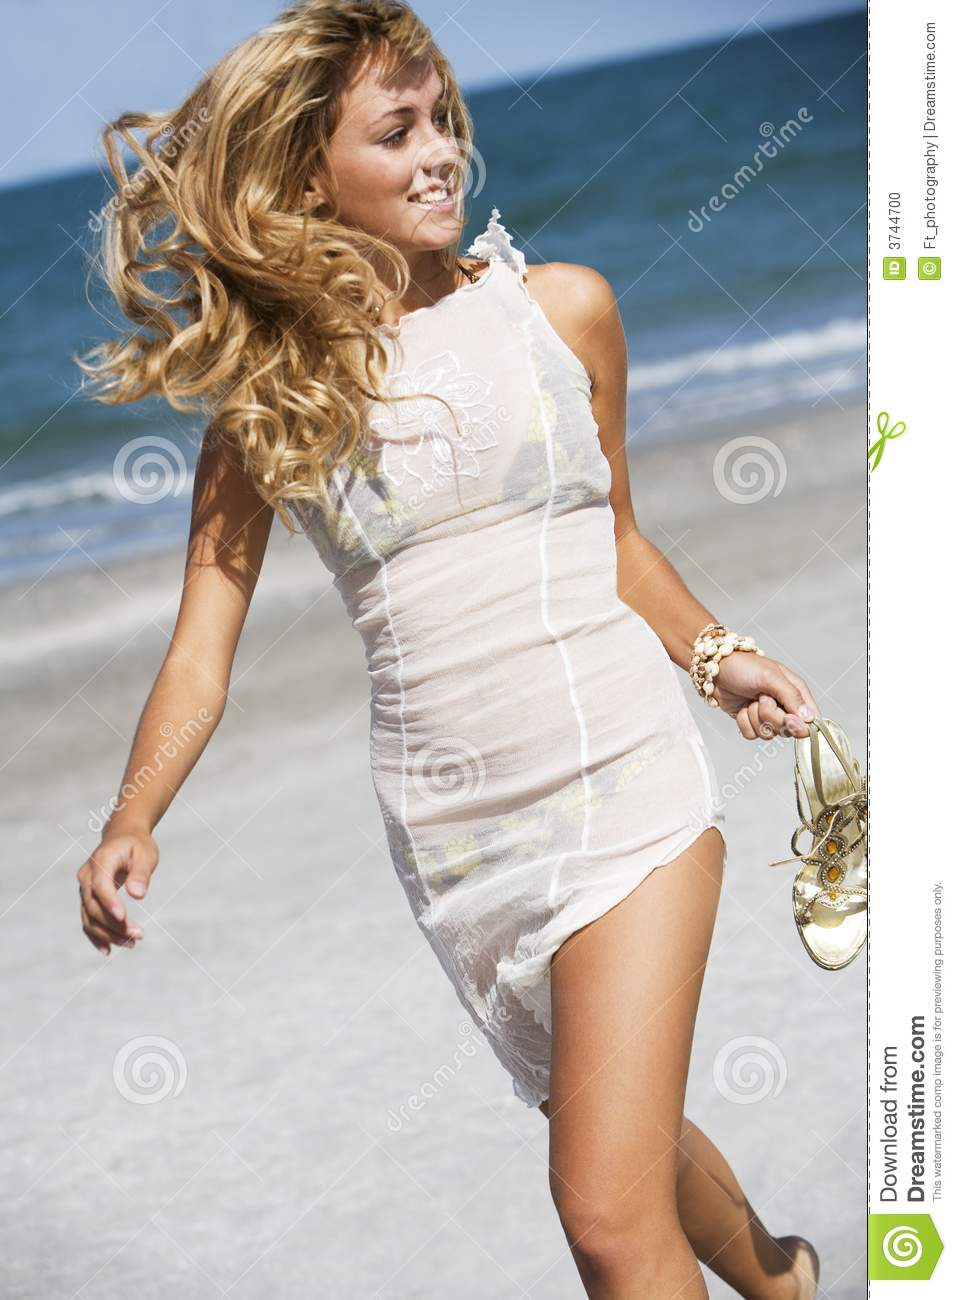 blond walking on beach